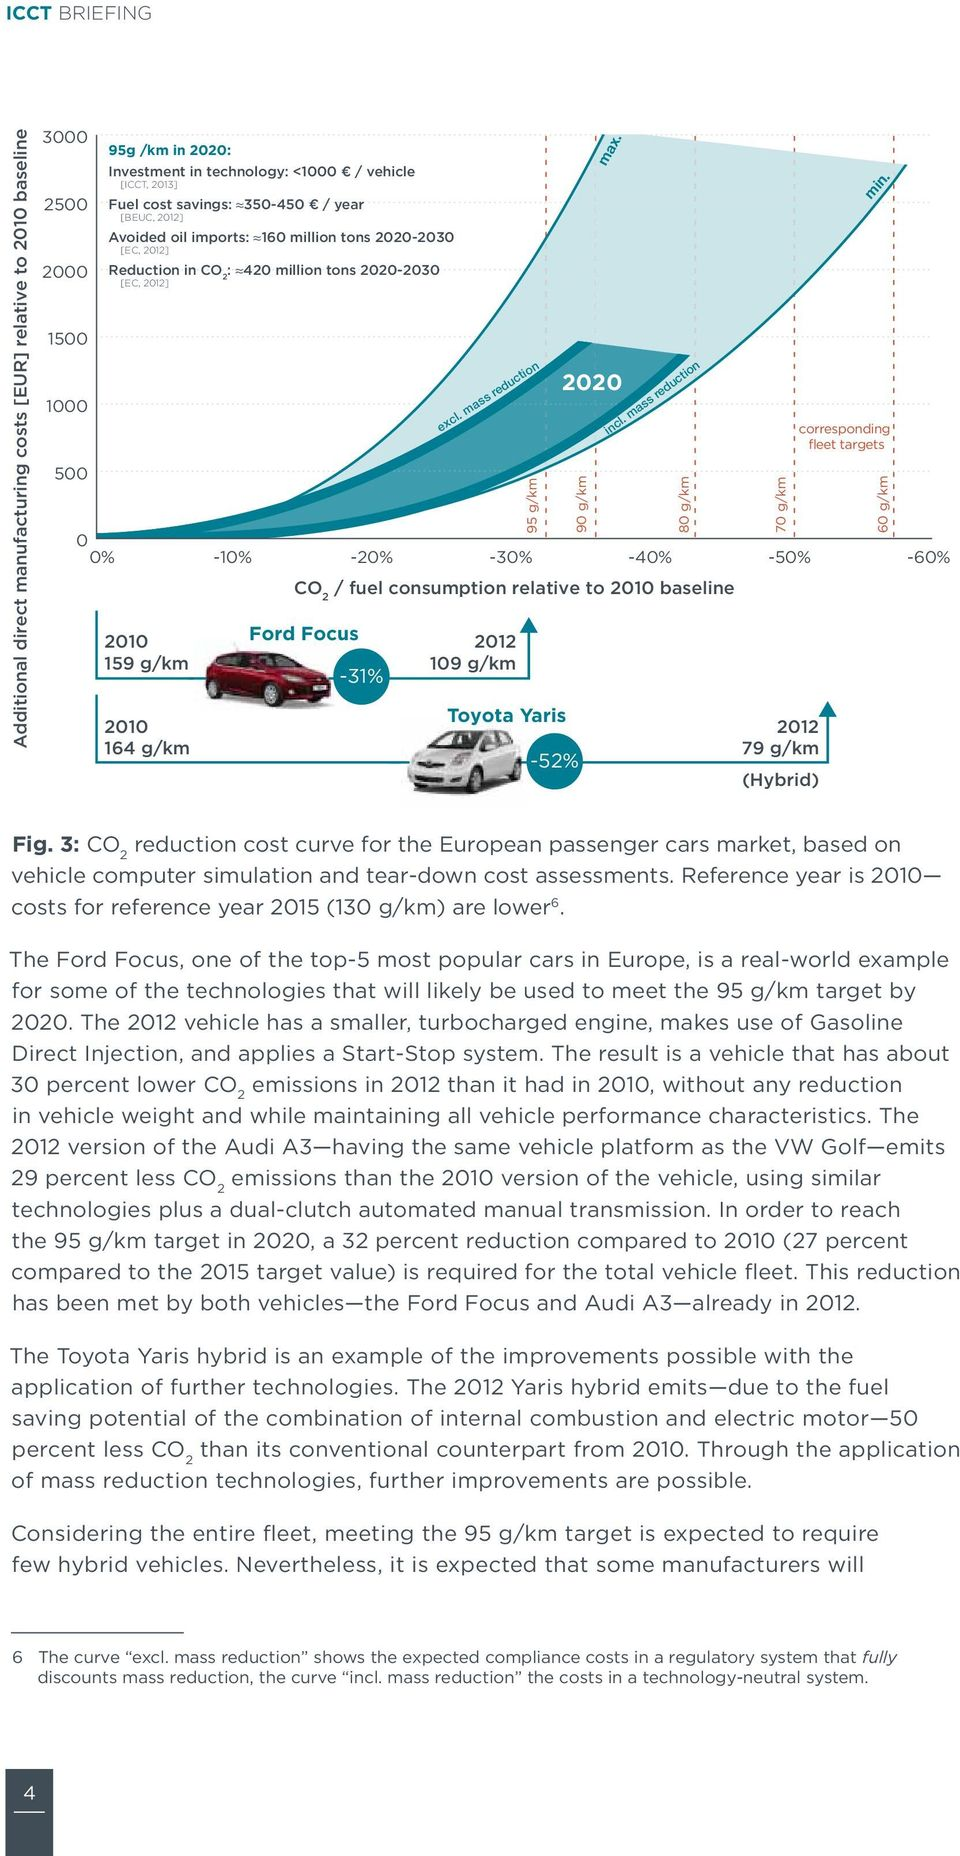 mass reduction -30% max. -40% CO 2 / fuel consumption relative to 2010 baseline Ford Focus -31% 2012 109 g/km 95 g/km Toyota Yaris -52% 2020 90 g/km incl.